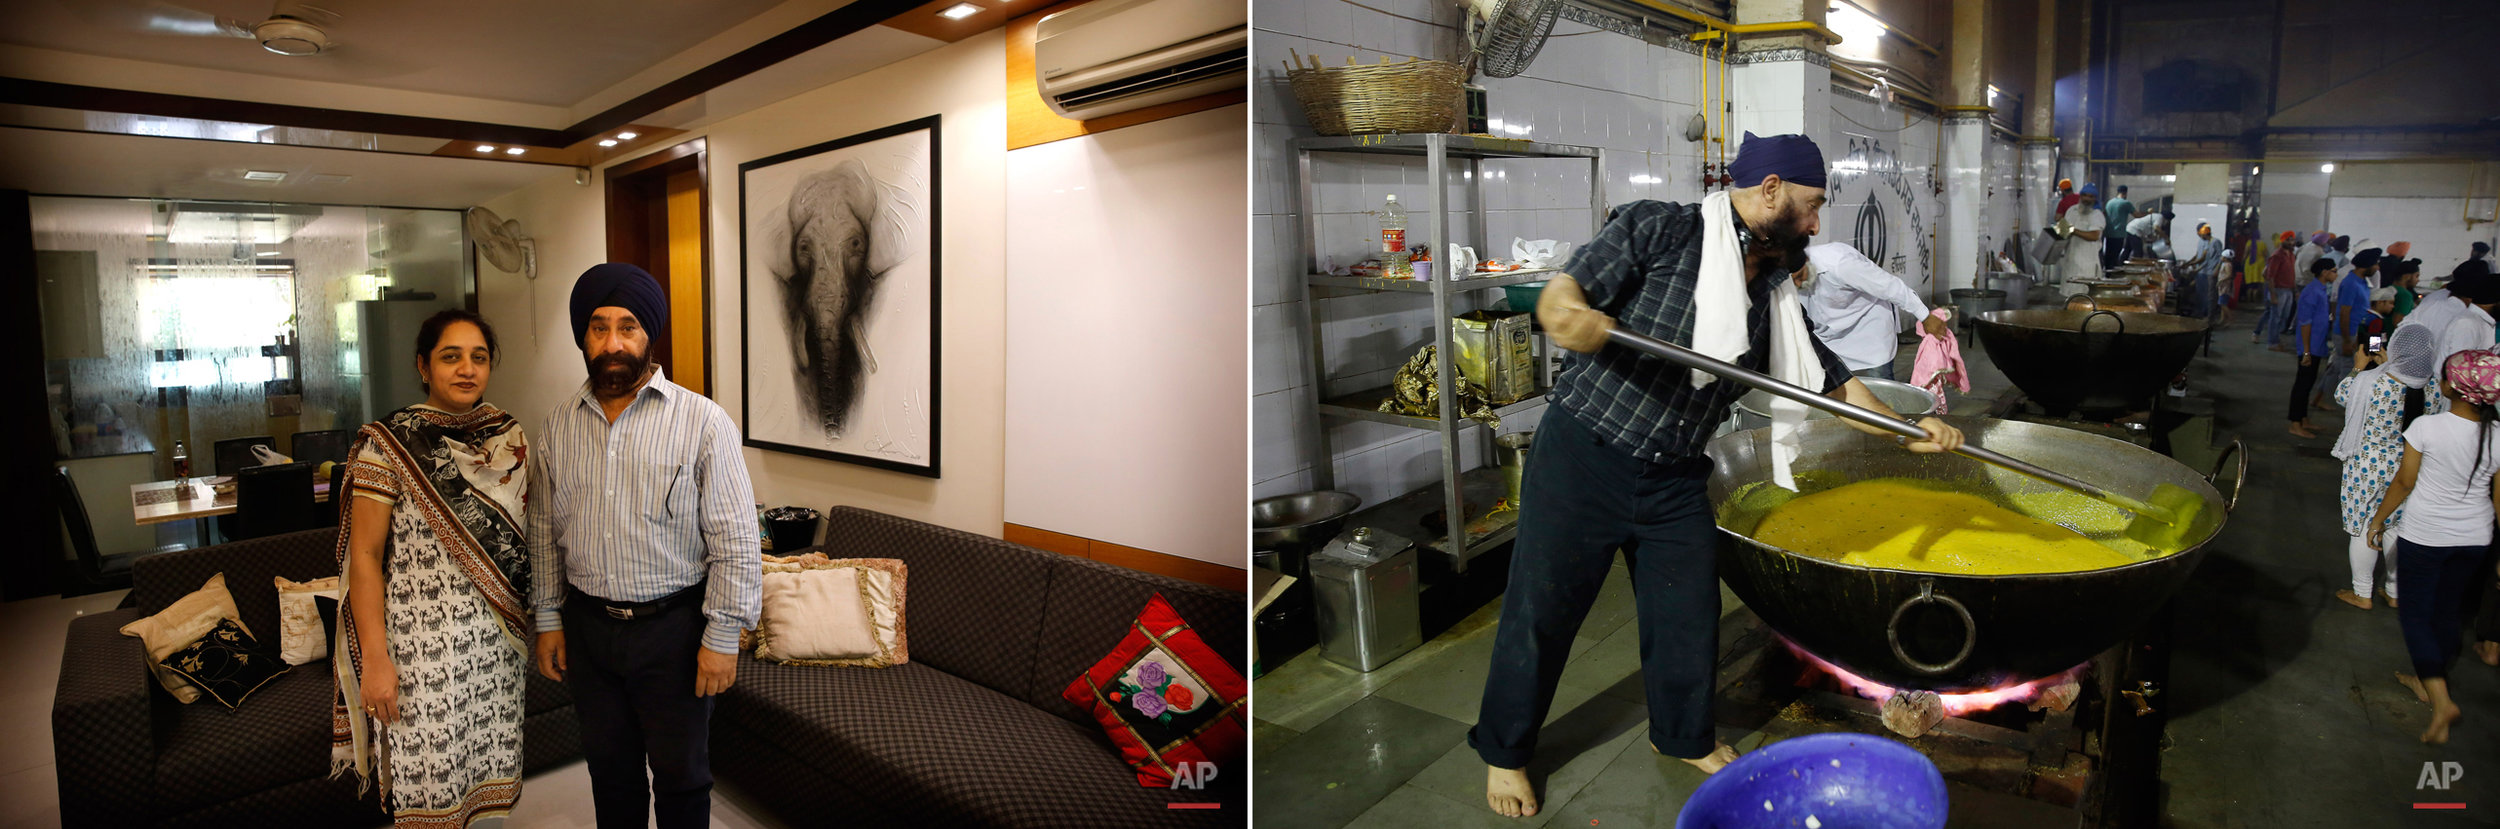 This two picture combo shows on left, Harpreet Singh poses with his wife at their house in New Delhi, India, on May 28, 2015, as on right, he prepares langar, or free community meal, at Bangla Sahib Gurudwara or Sikh temple, on May 23, 2015, in New Delhi, India. Service is one of the most integral traditions of gurudwaras. From cleaning to preparing tons of food every day there is plenty of work to be done. And there are plenty of sevadaars, or volunteers, to do it. While the gurudwara employs a small group of men to help manage the kitchen, it depends on visiting worshippers to contribute nearly half of all work and food supplies. (AP Photo/Manish Swarup)